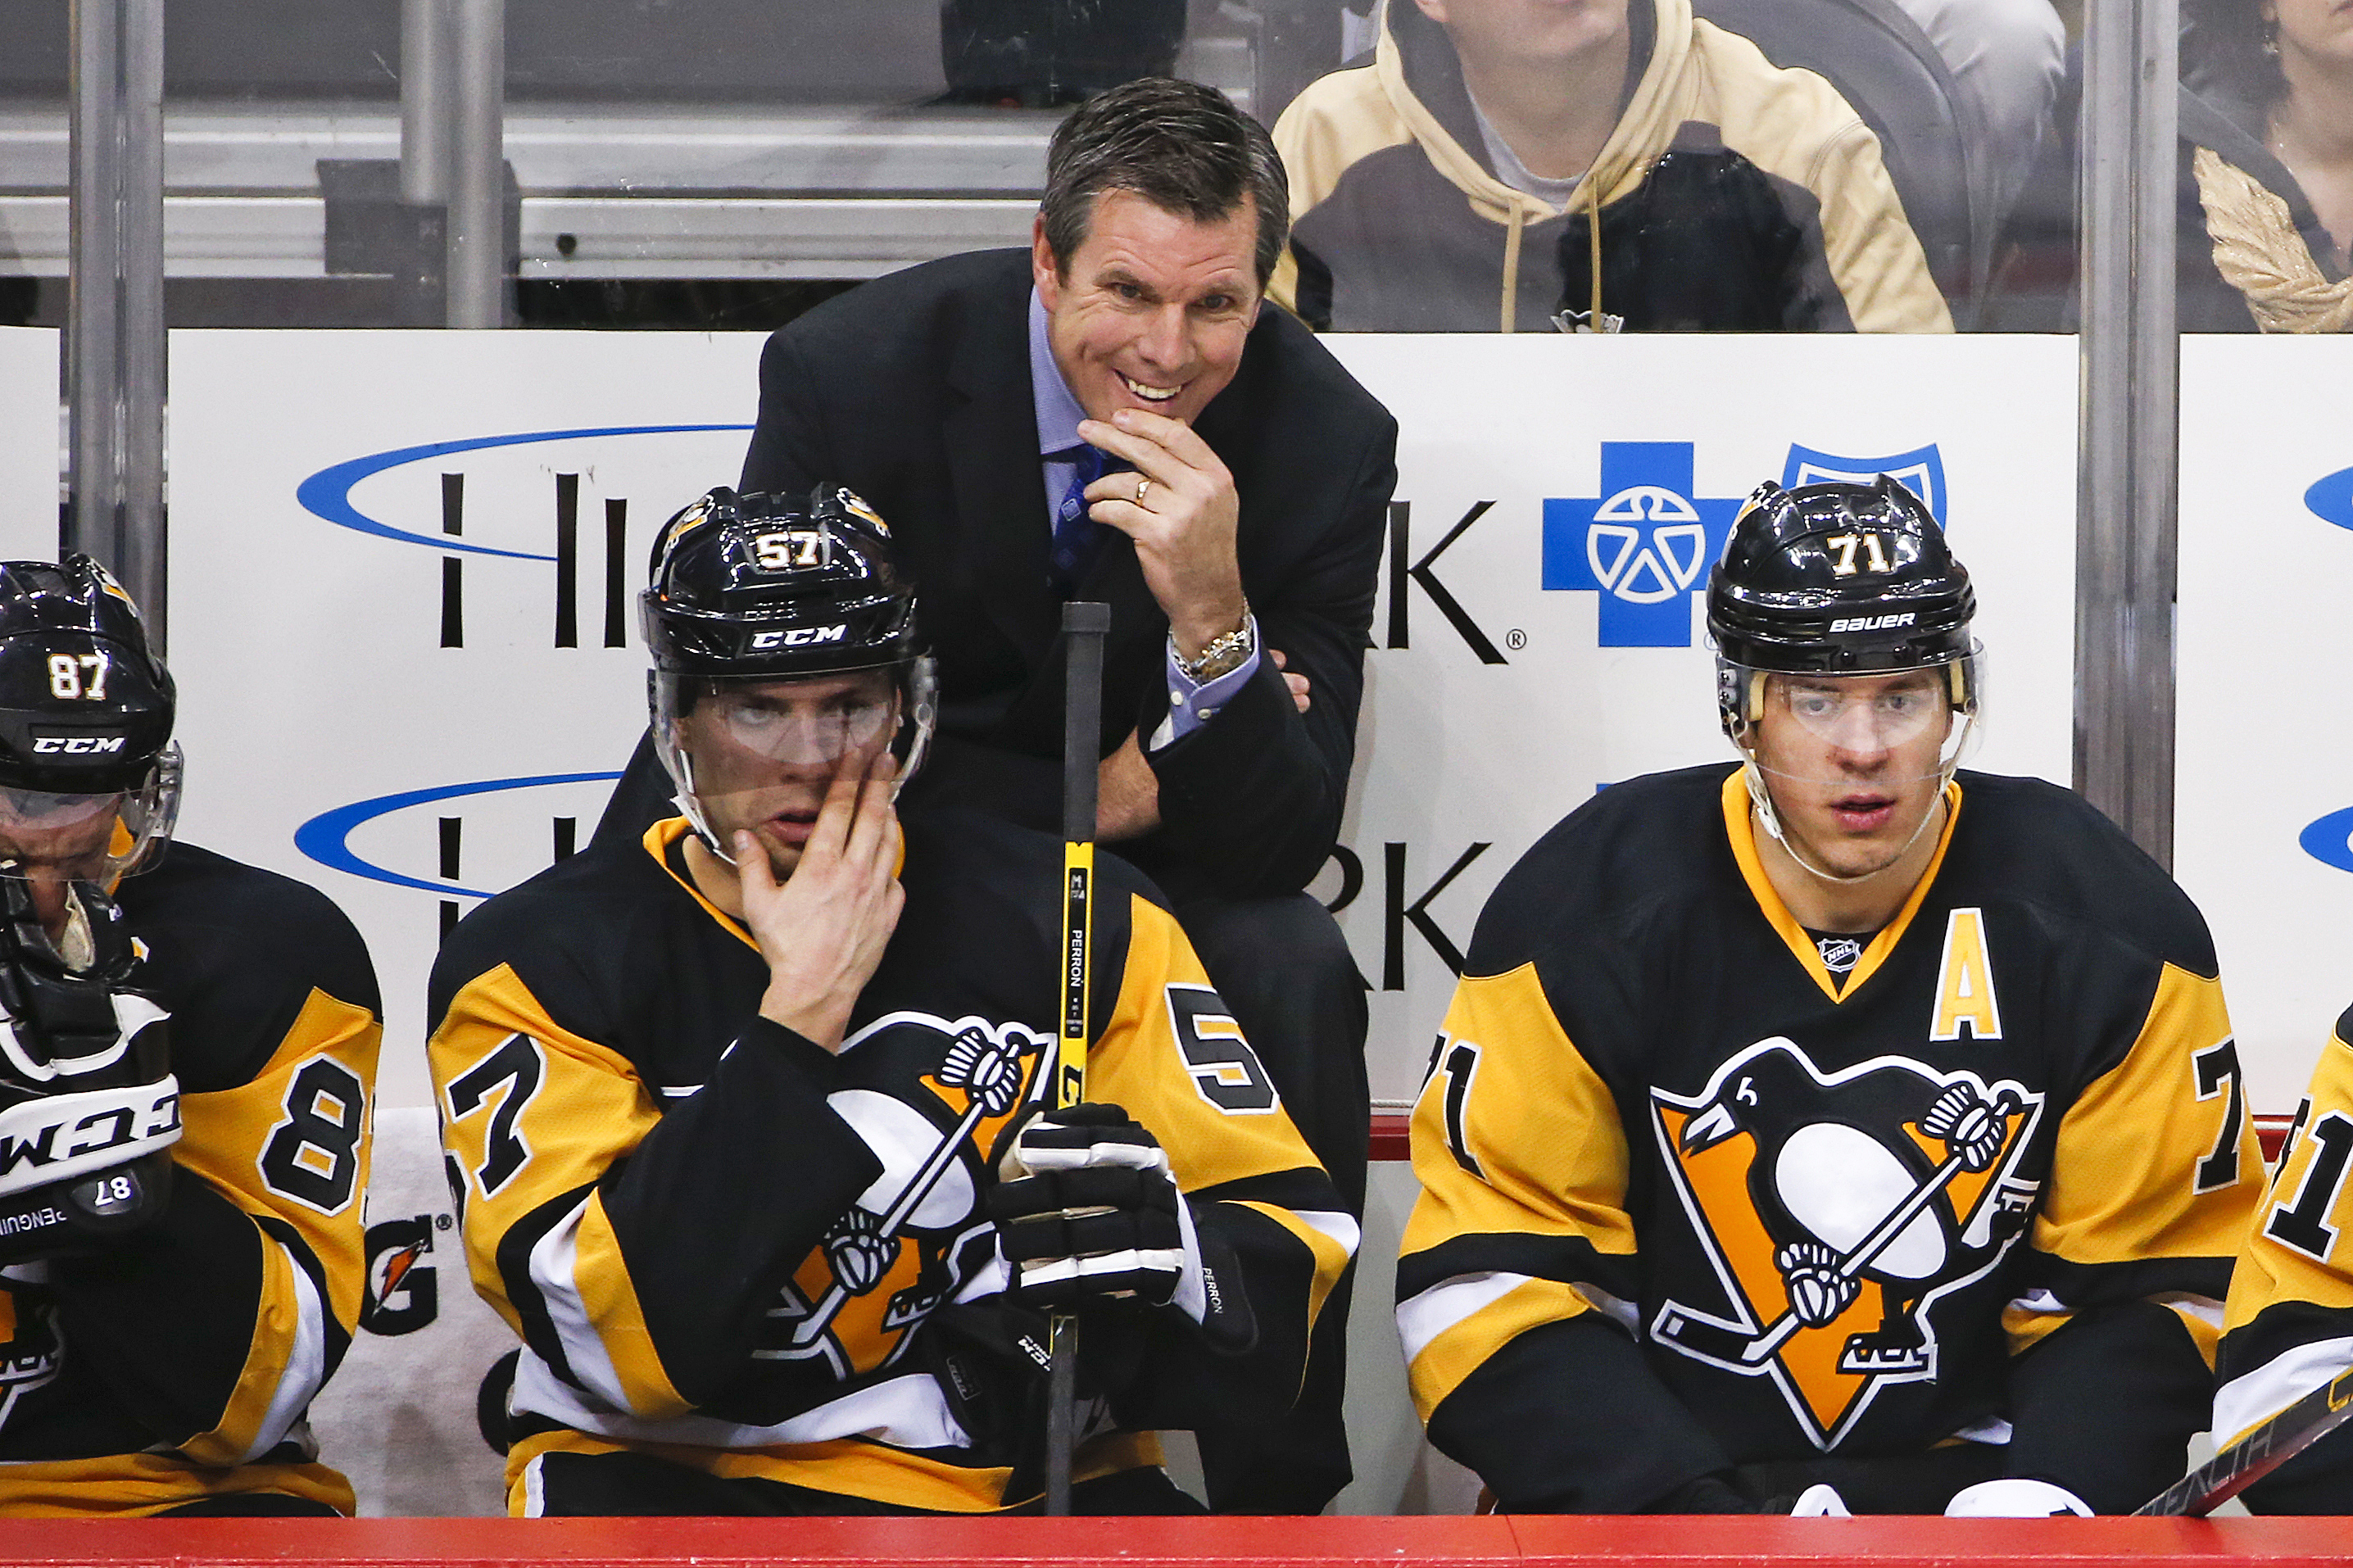 FILE - In this Jan. 2, 2016, file photo, Pittsburgh Penguins head coach Mike Sullivan stands behind David Perron (57), and Evgeni Malkin (71) during an NHL hockey game against the New York Islanders in Pittsburgh. The Penguins are on the cusp of a fourth